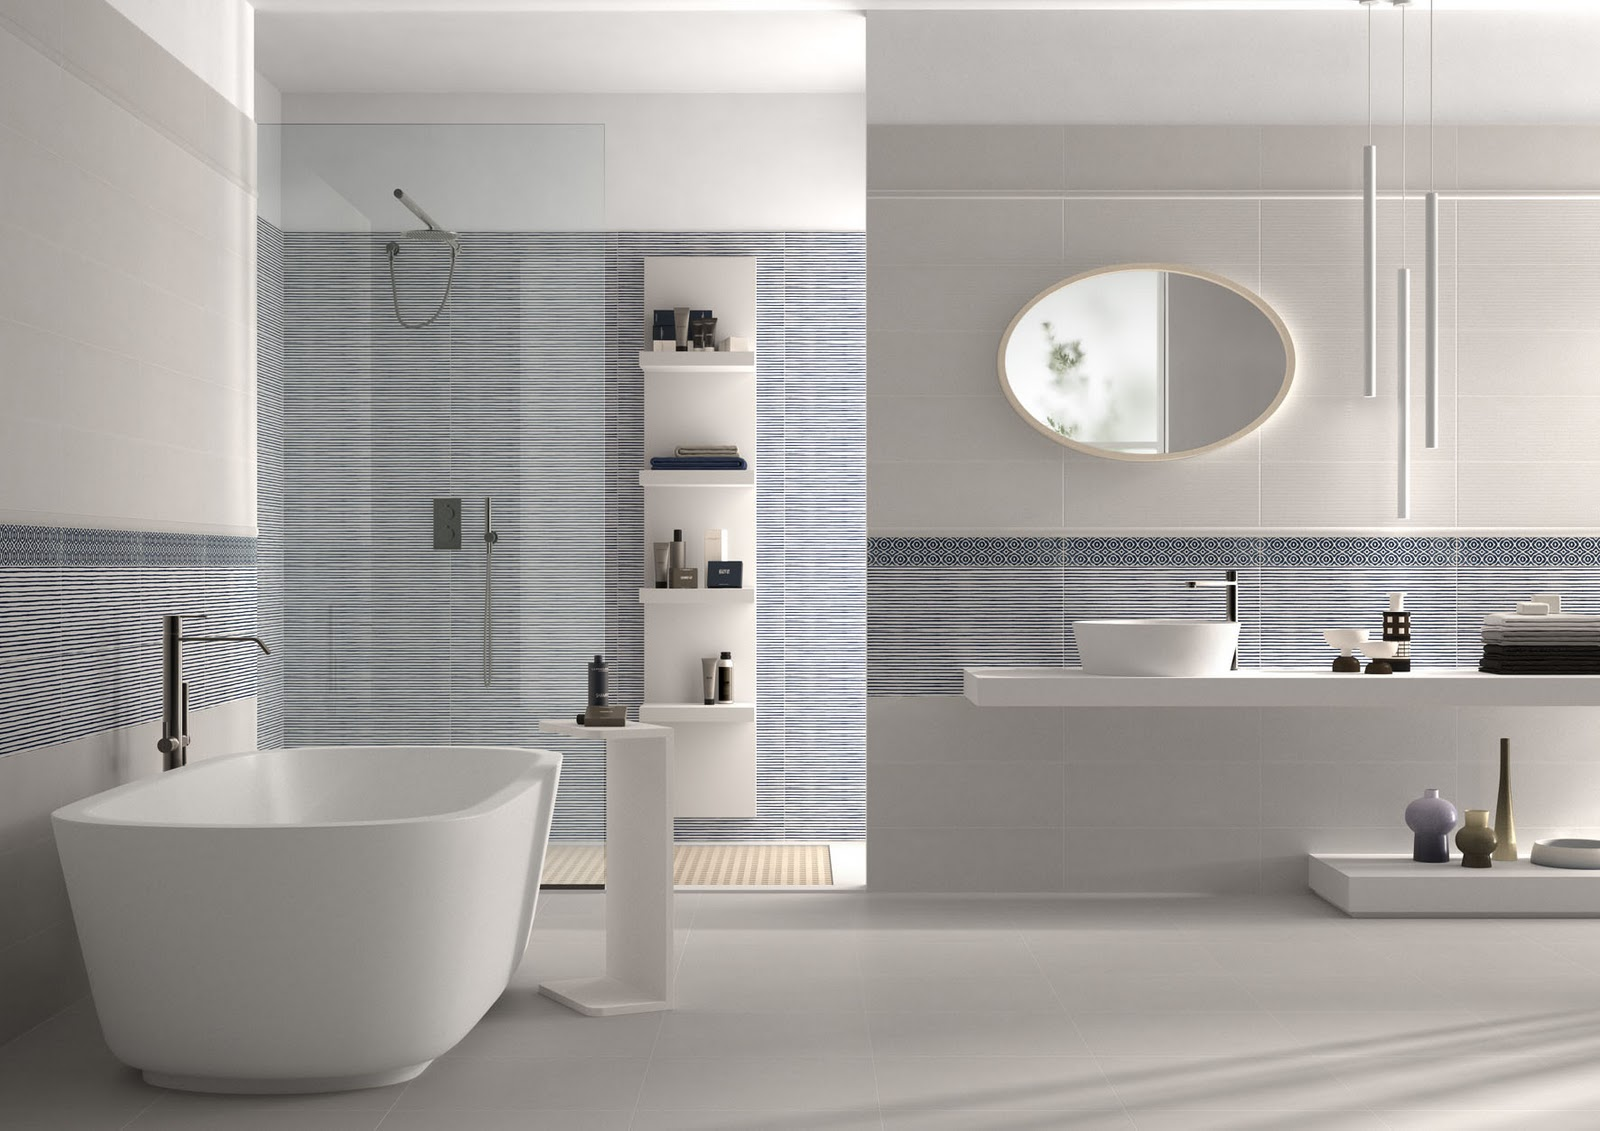 Accessori bagno design ~ avienix.com for .